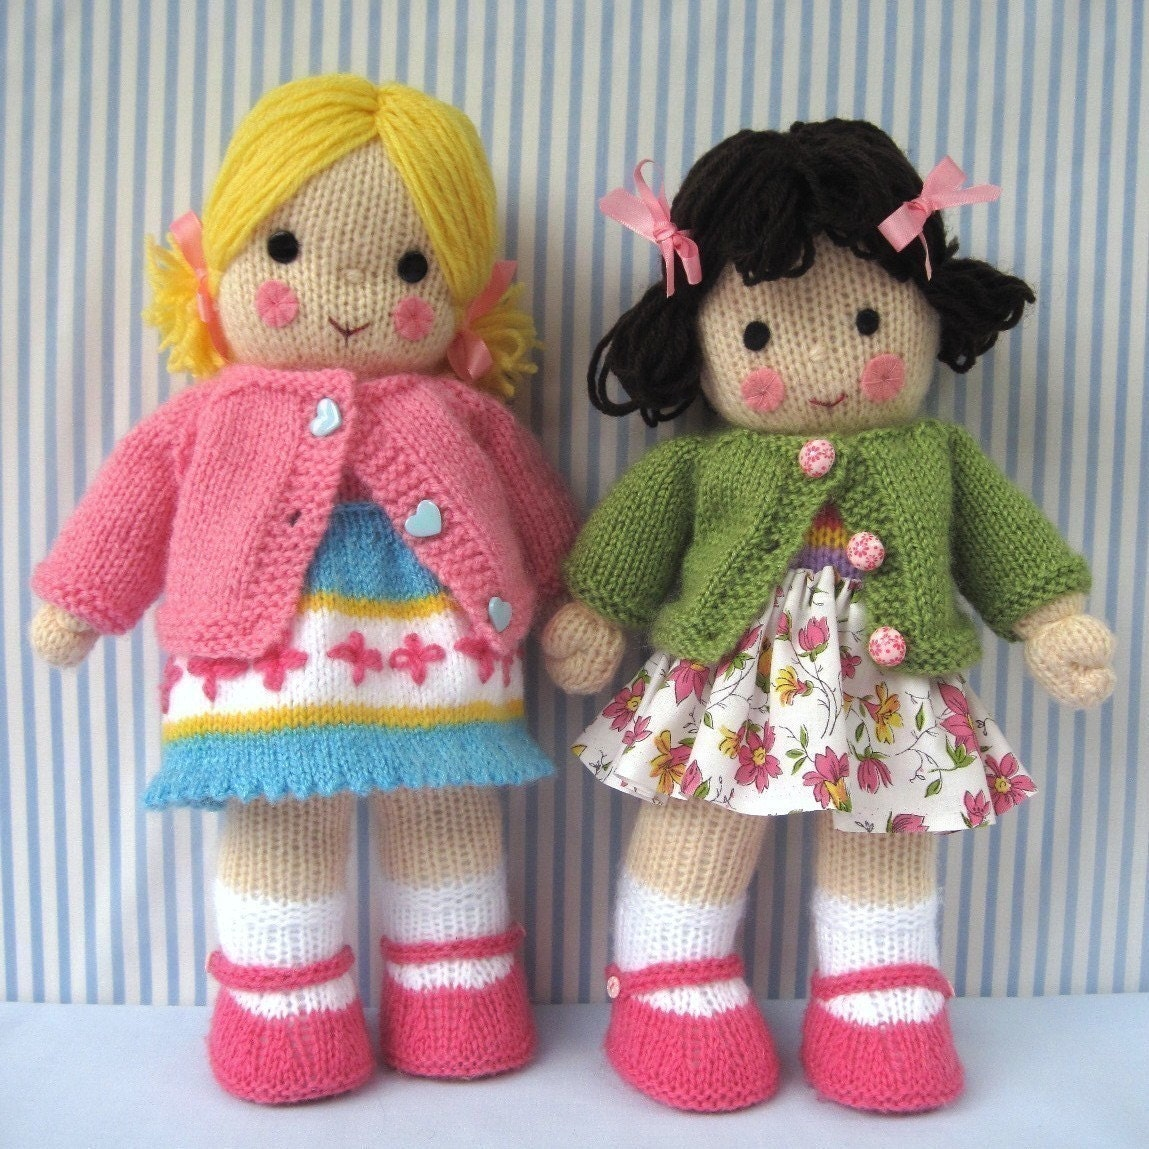 Knitting Patterns For Toys On Etsy : POLLY and KATE knitted toy dolls PDF email knitting